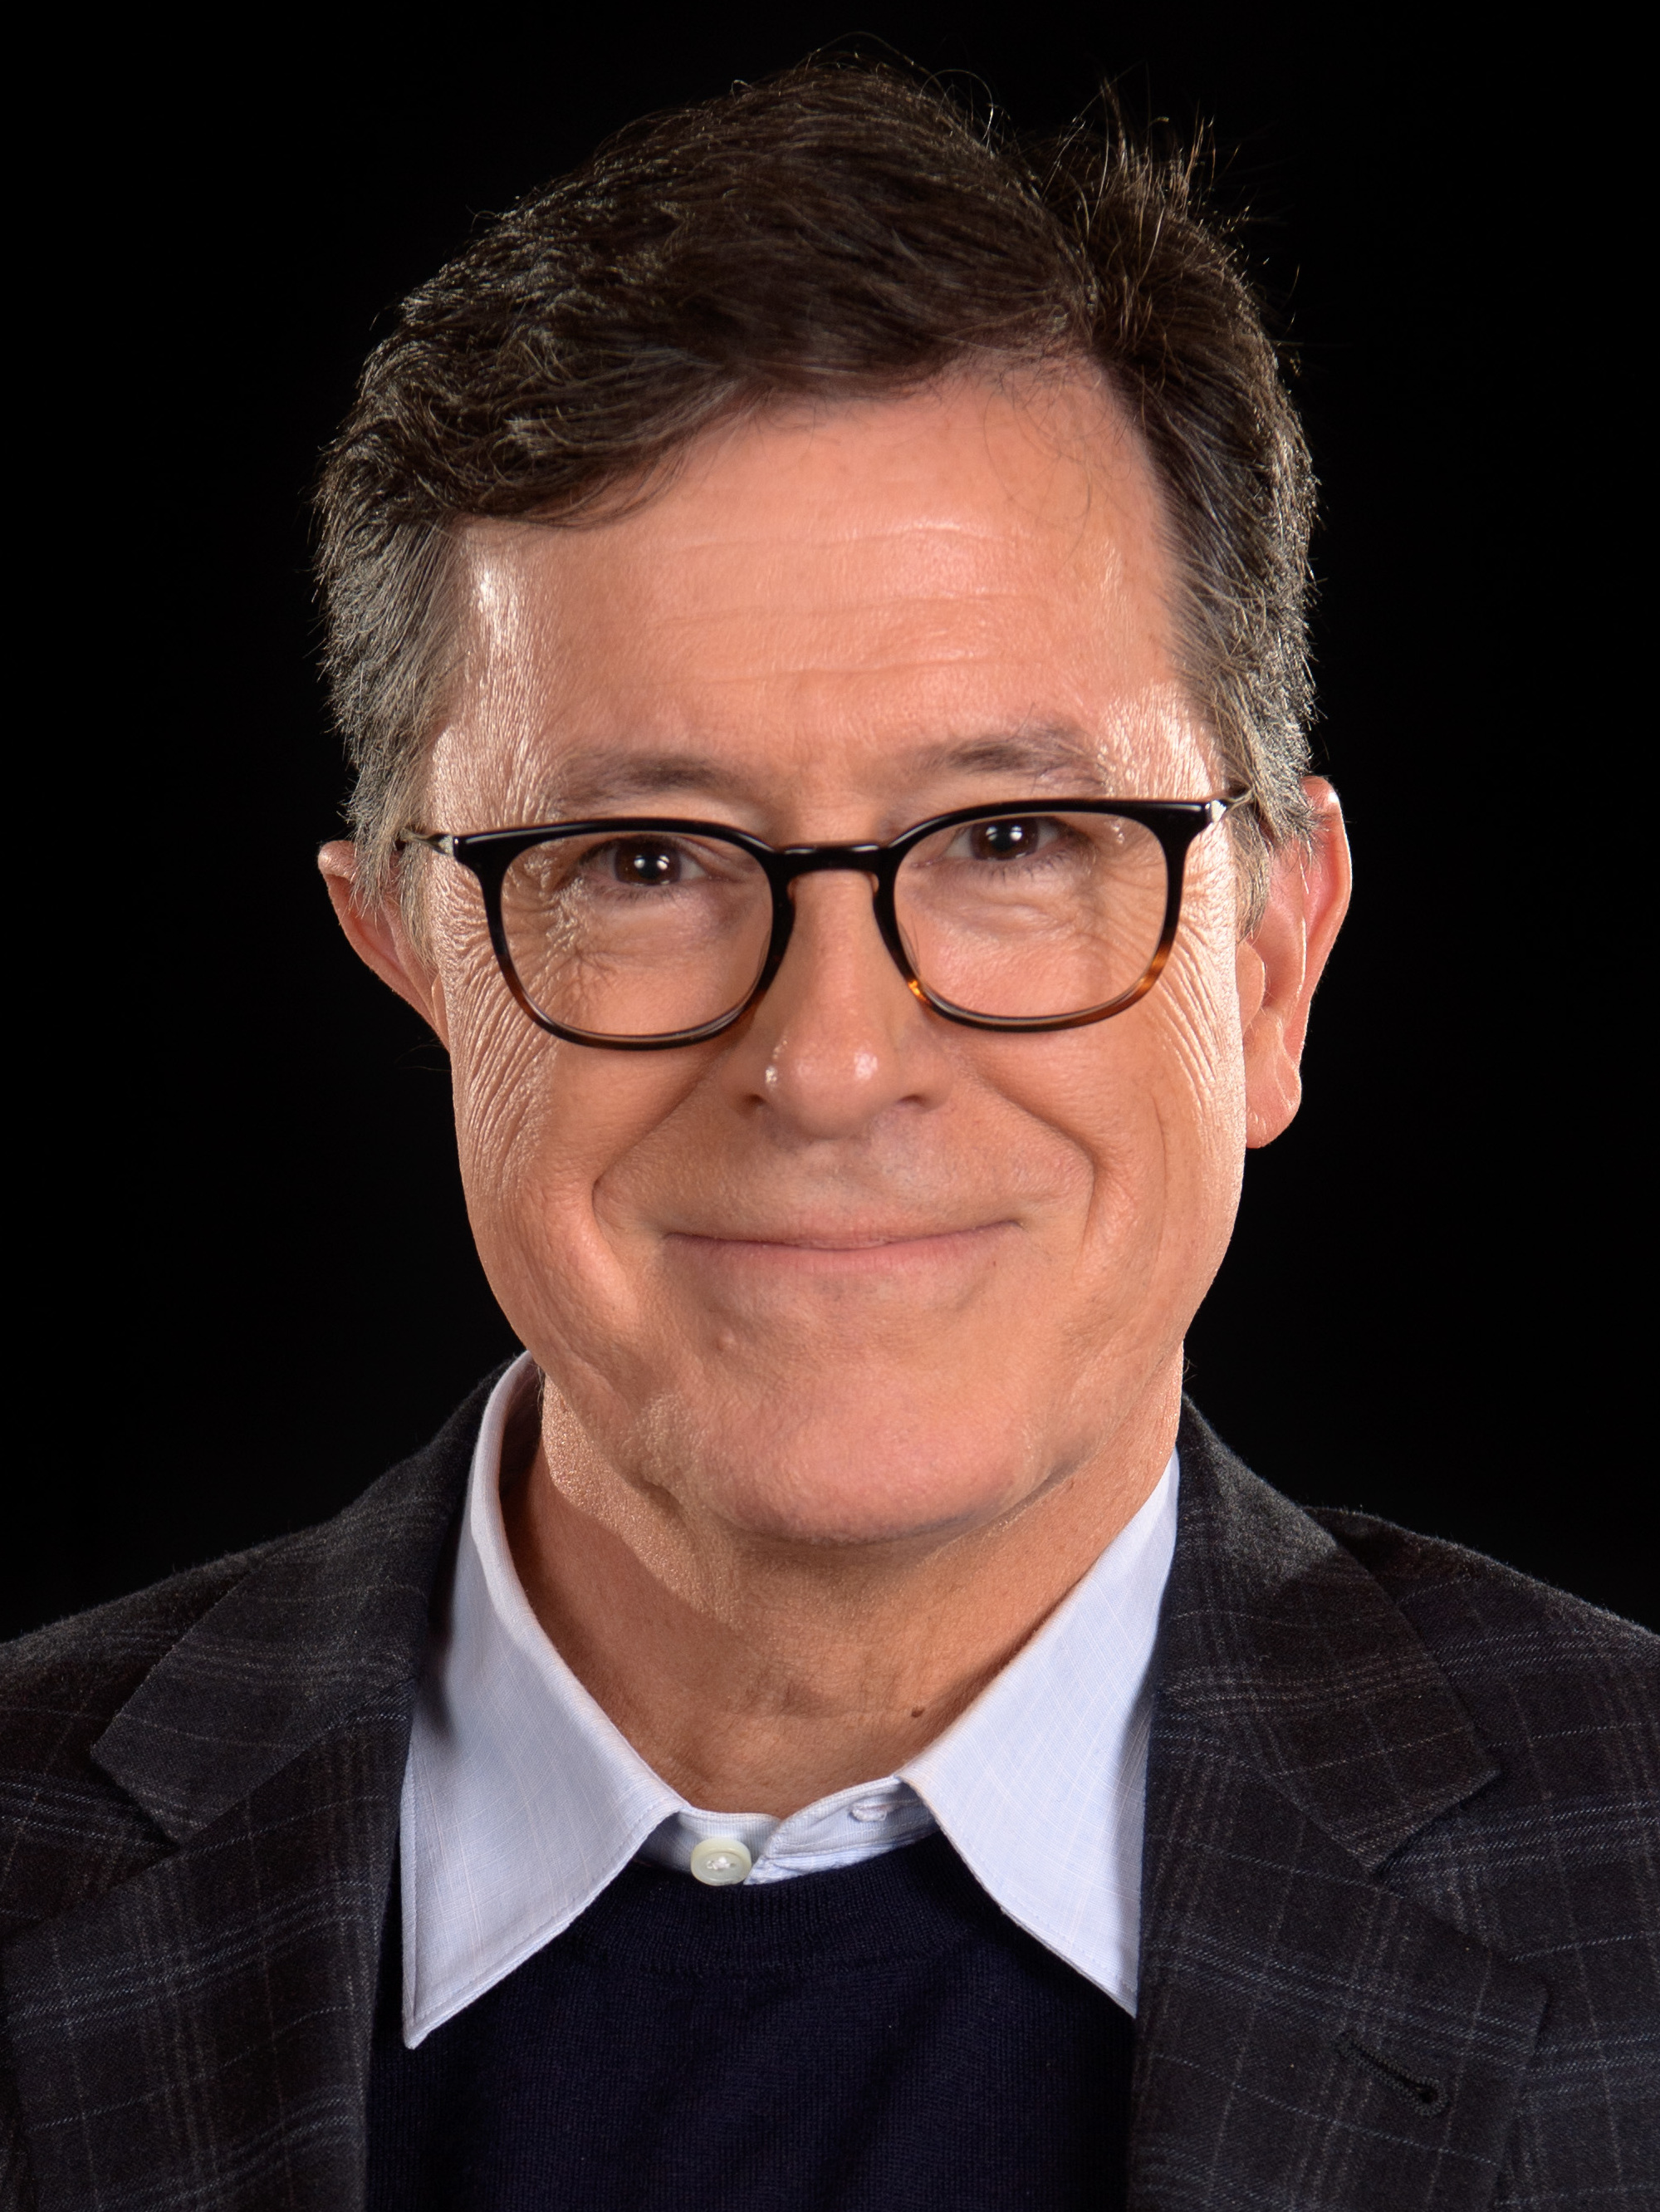 Stephen Colbert Wikipedia